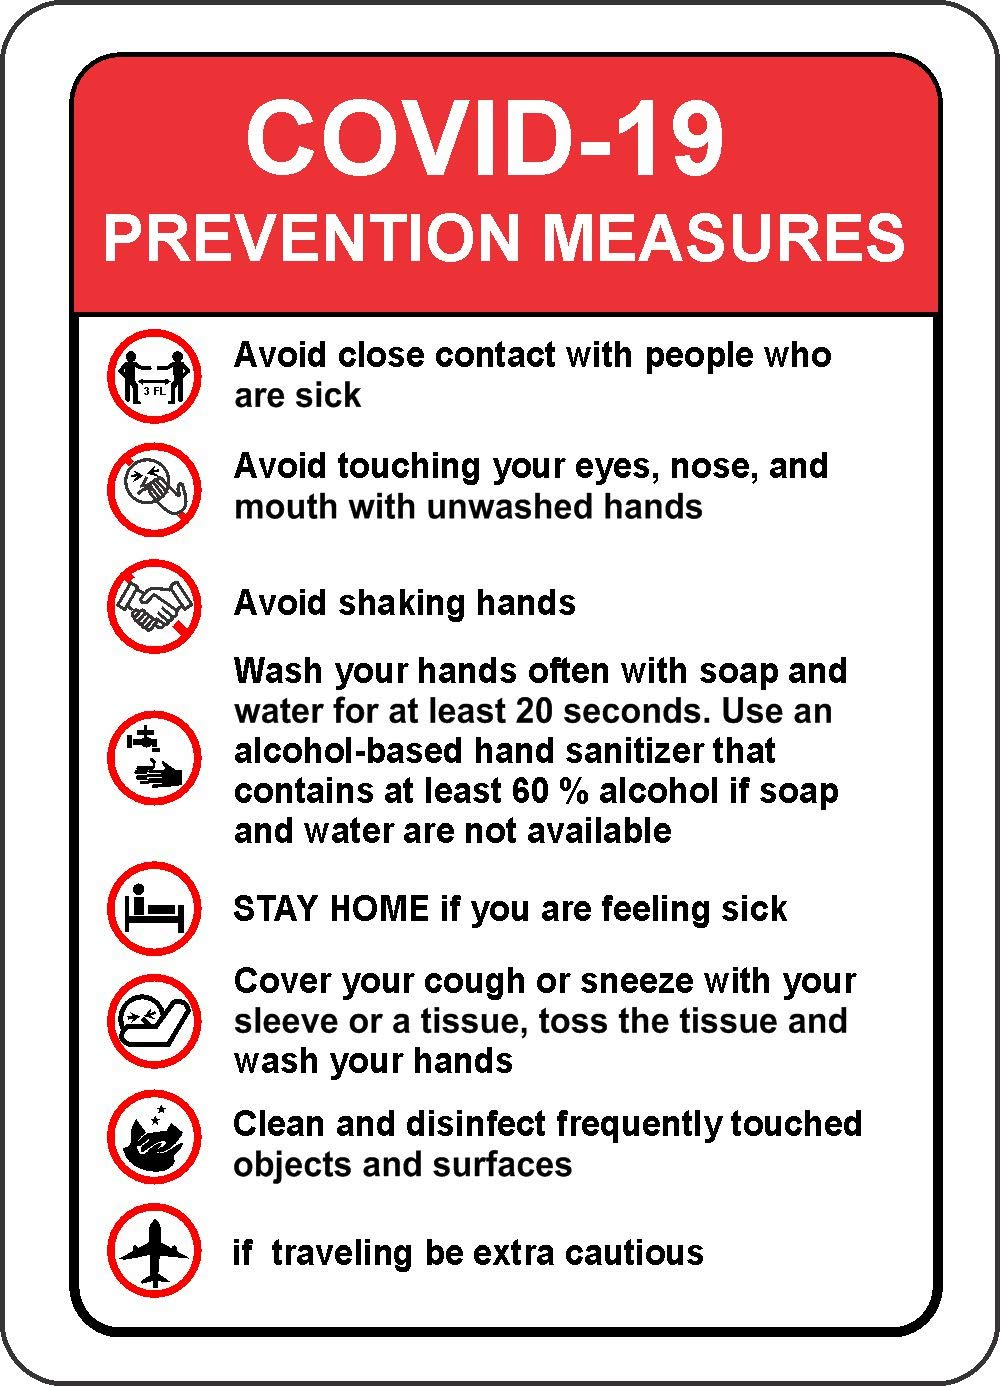 Safety School Hotel COVID-19 Prevention Measures Sign 127mmx177mm INDIGOS UG Company Warning Sticker Decal for Office